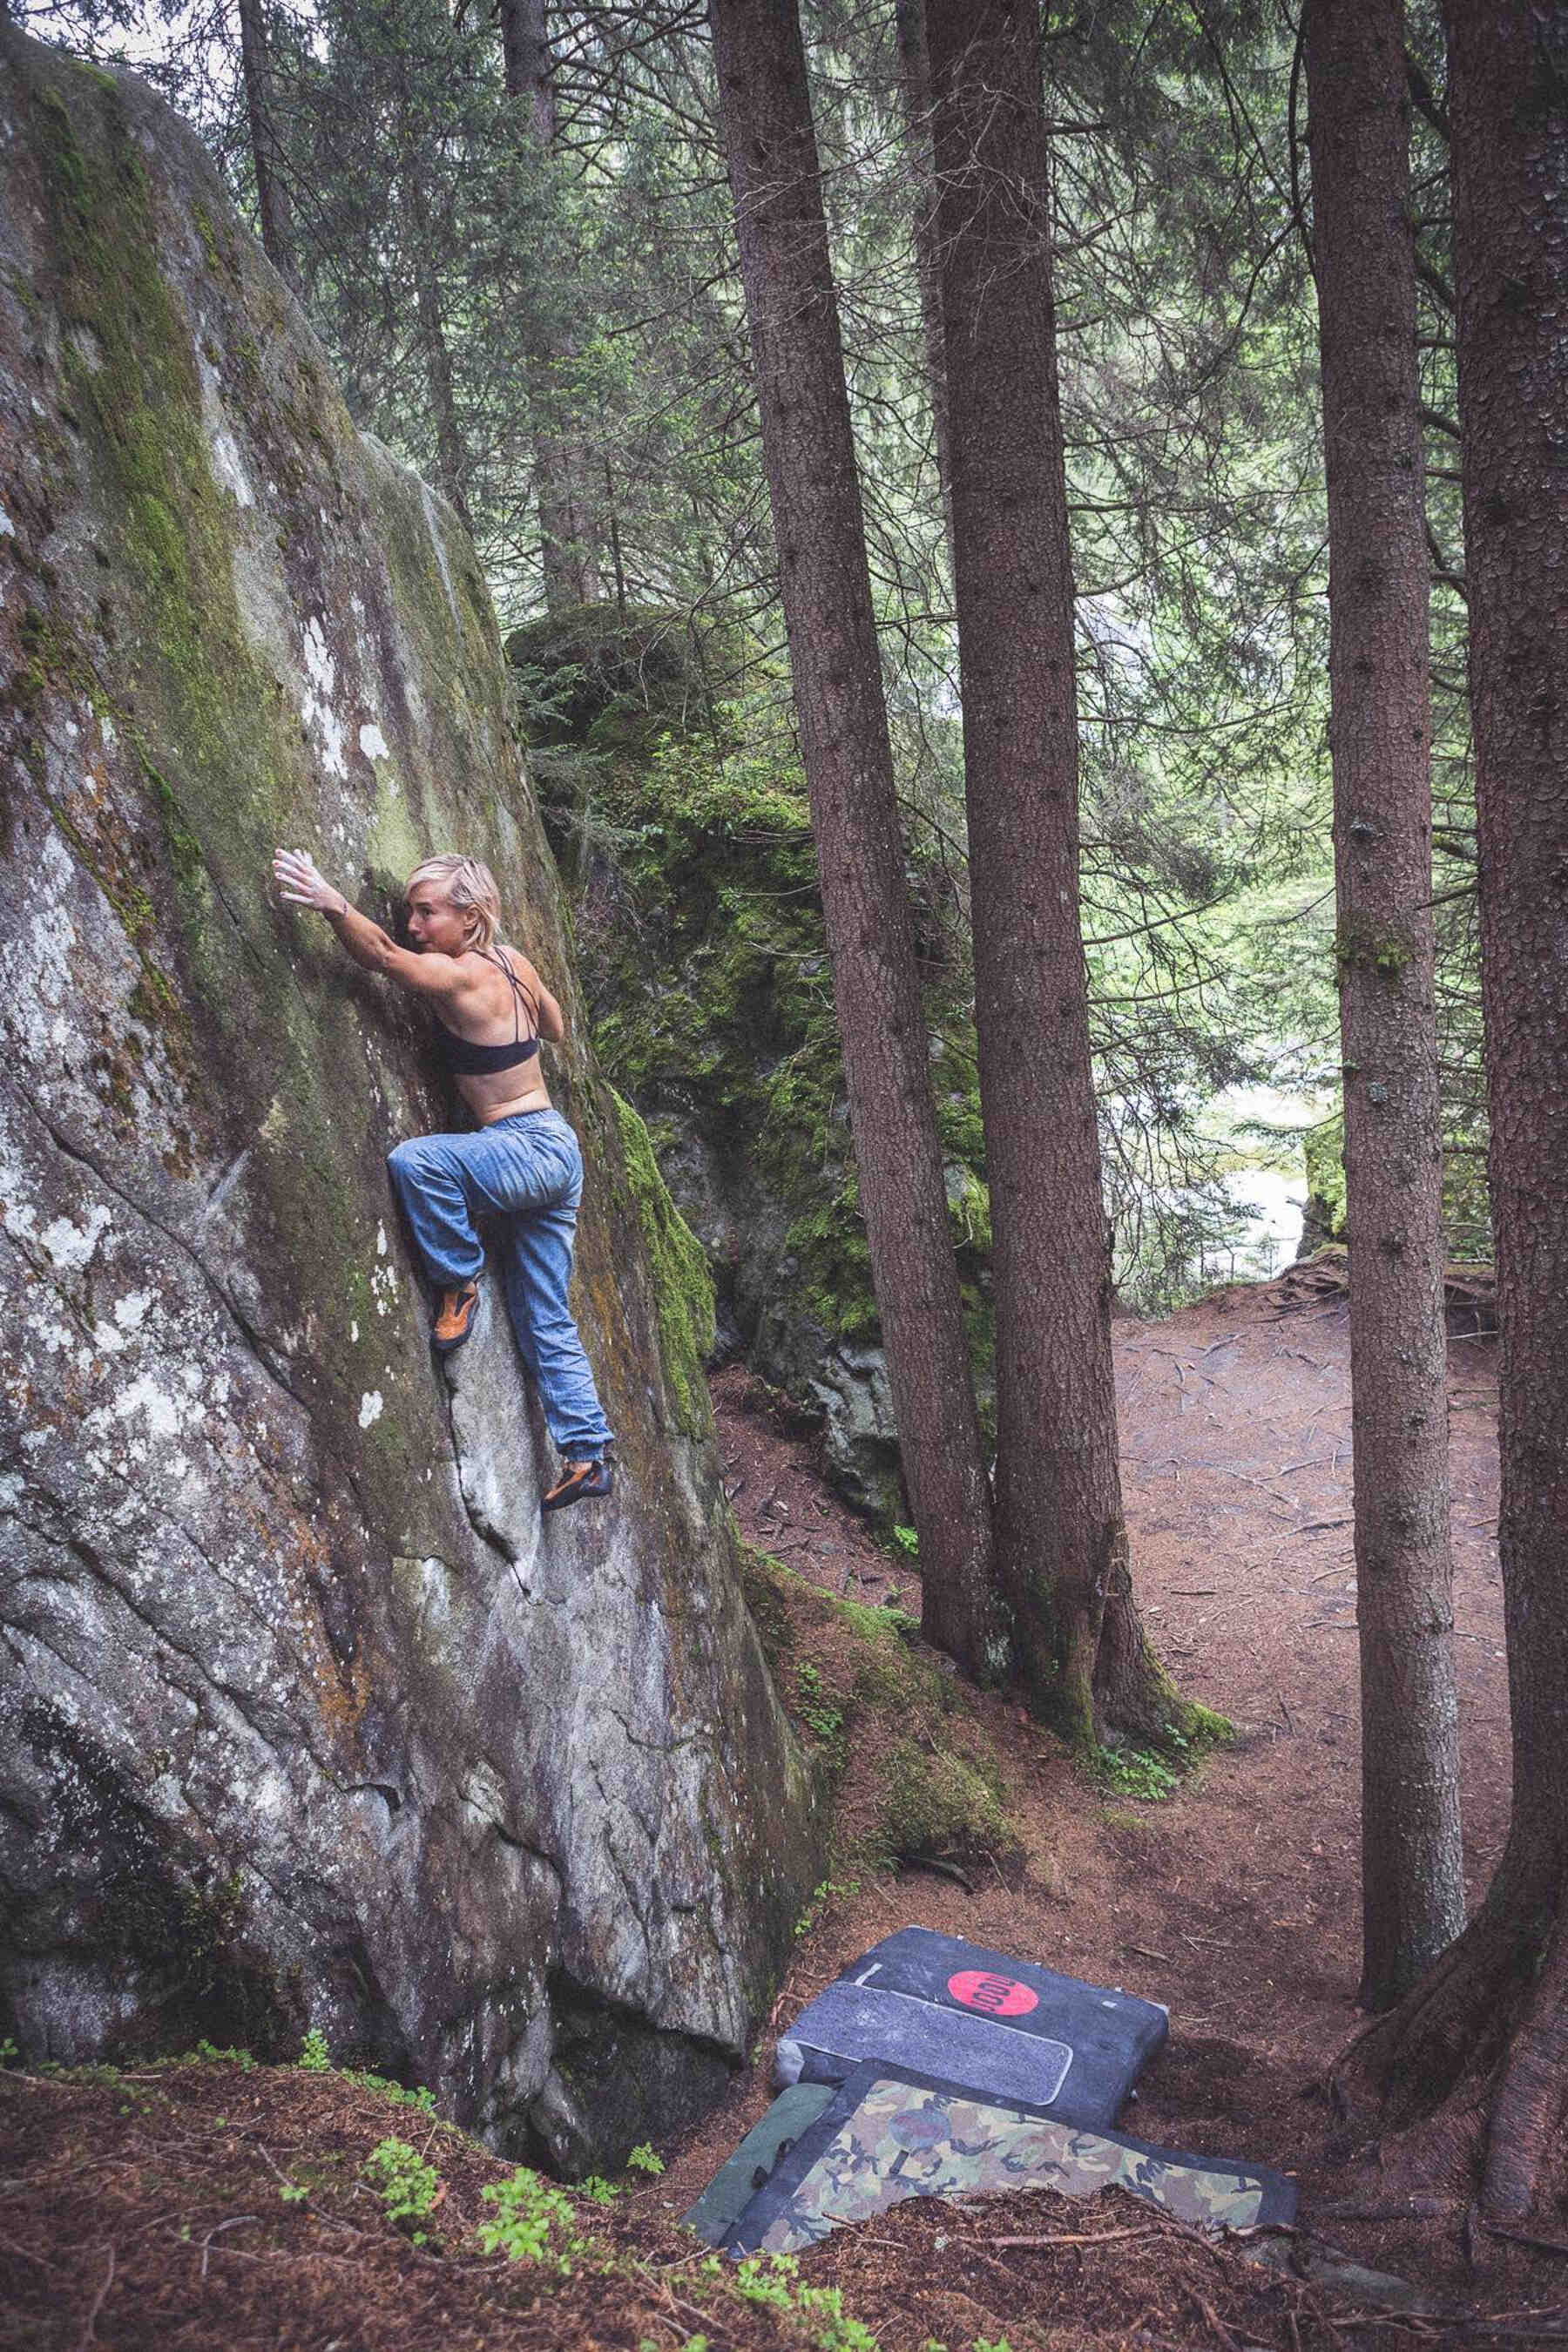 Zofia Reych, FrictionLabs rock climbing chalk pro athlete, Magic Wood, Chur, Switzerland